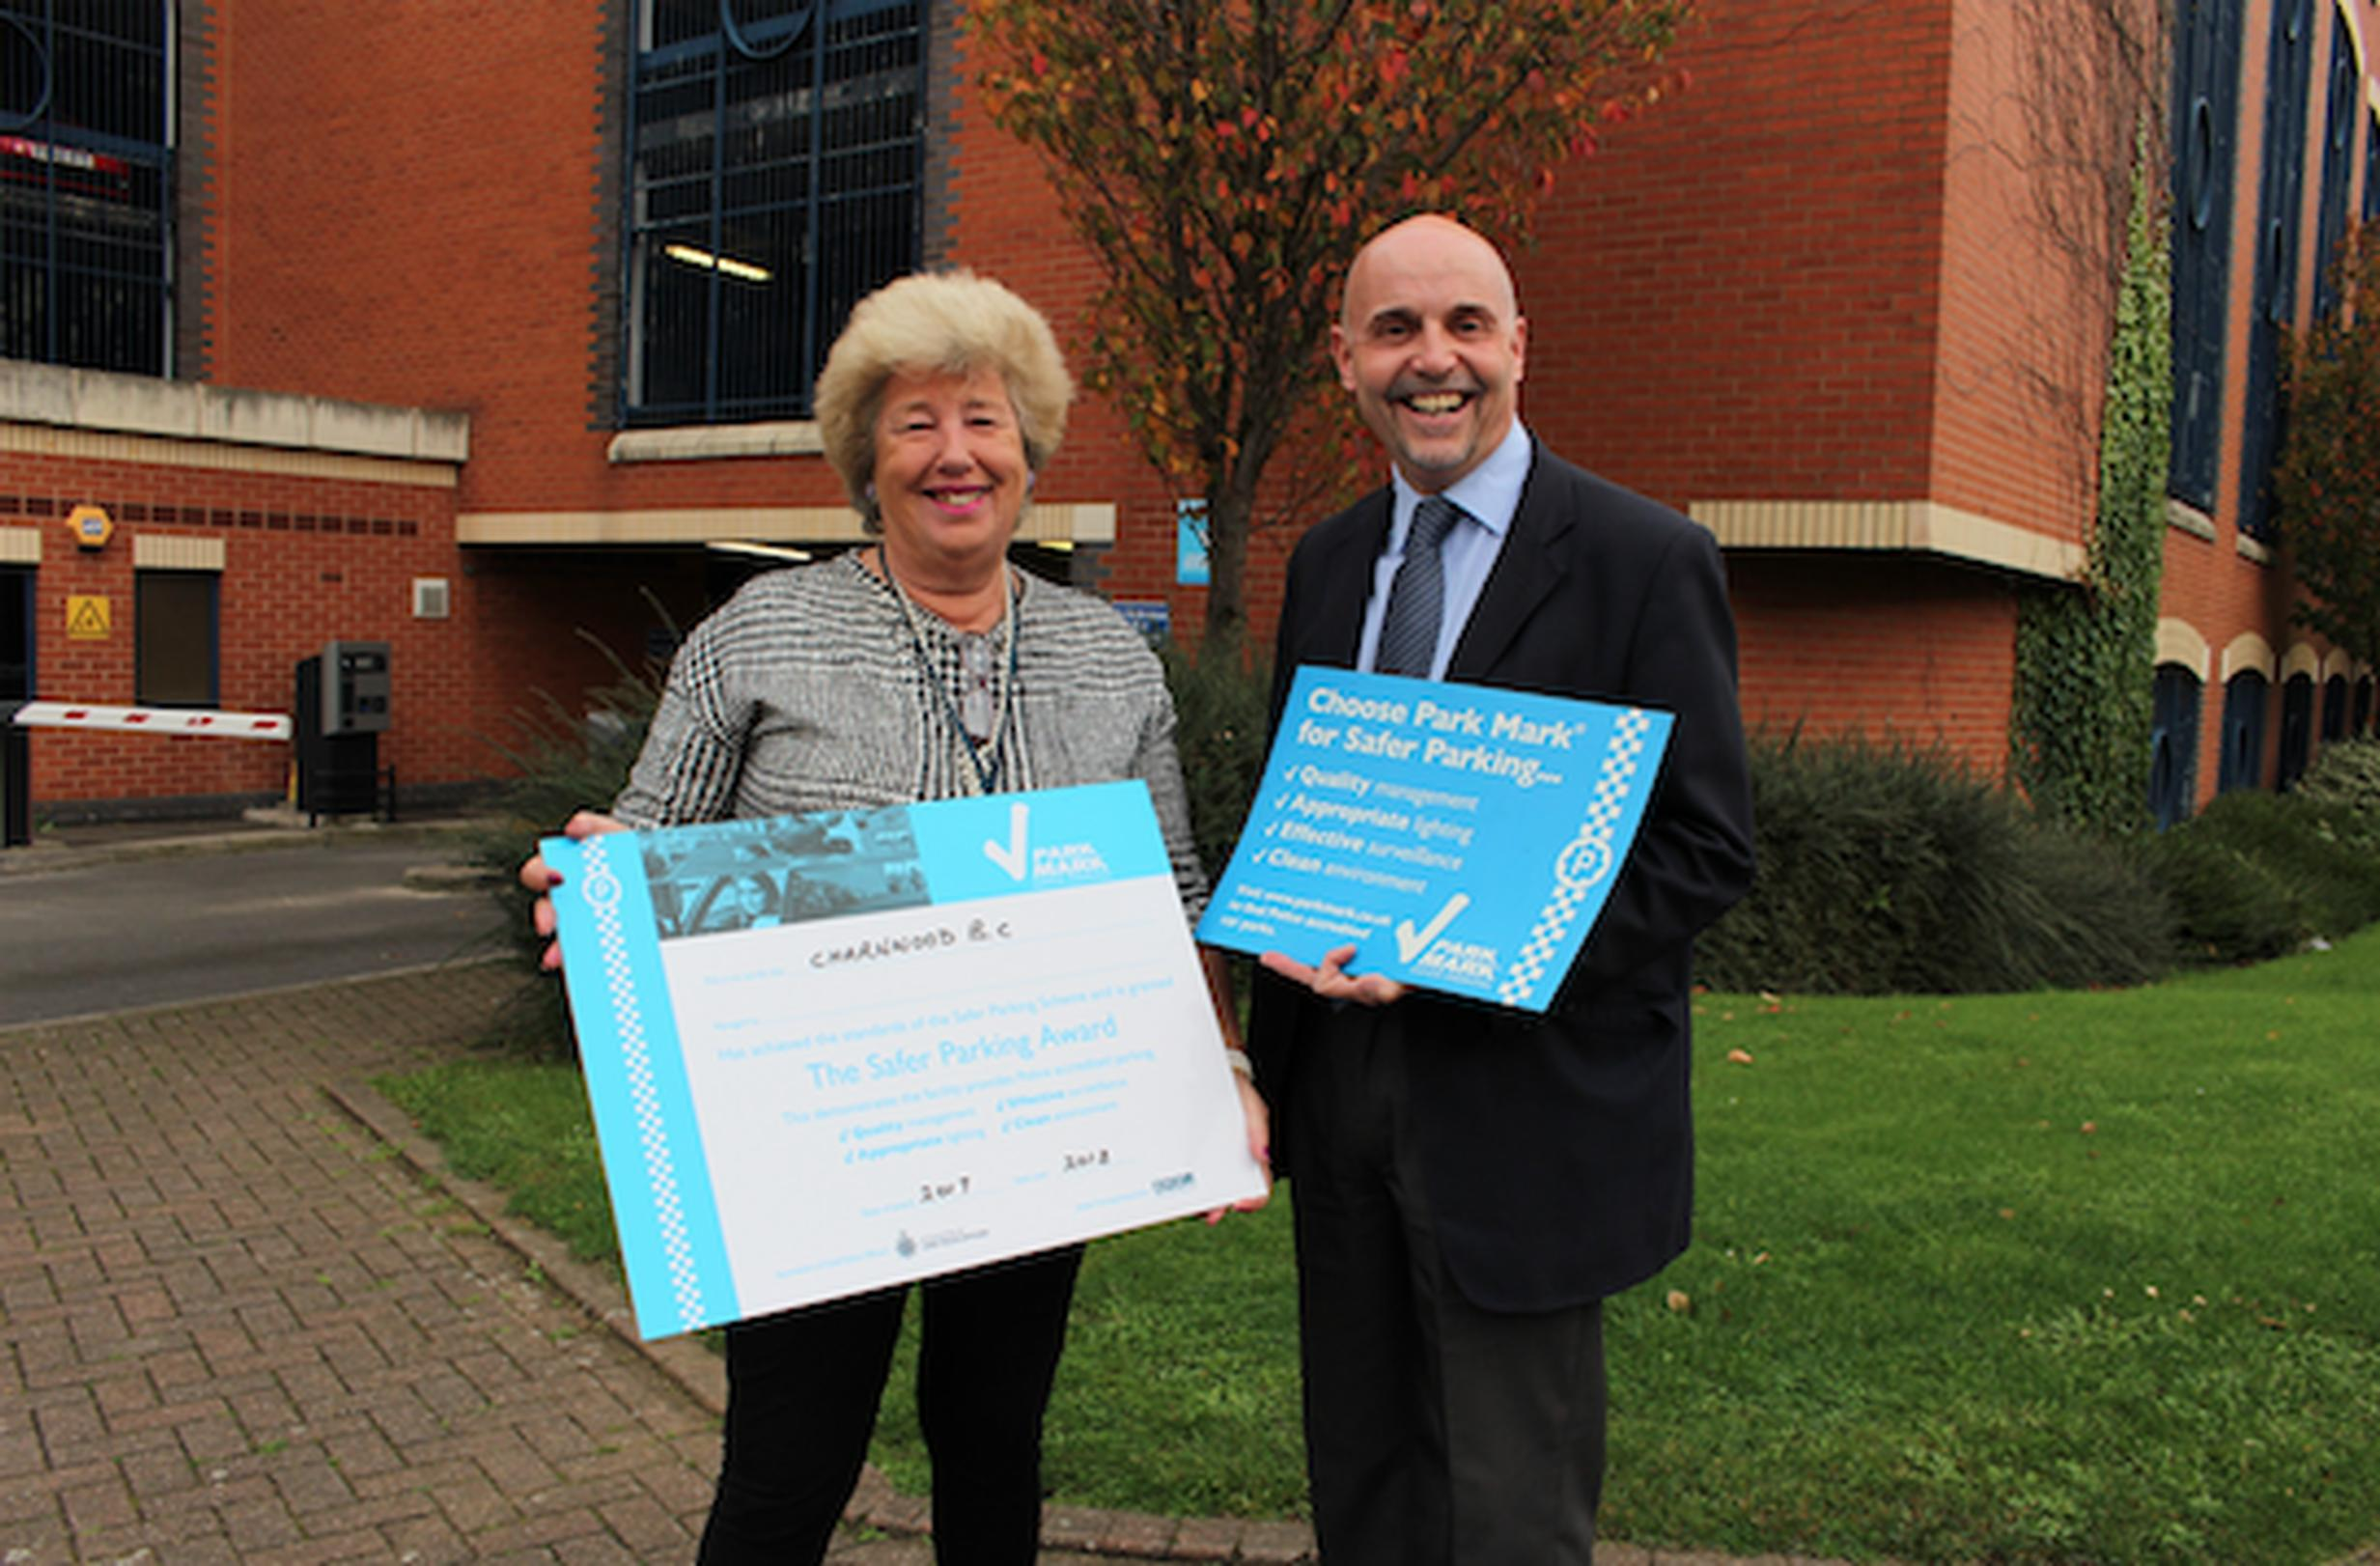 Loughborough council sites receive safer parking and disabled parking awards